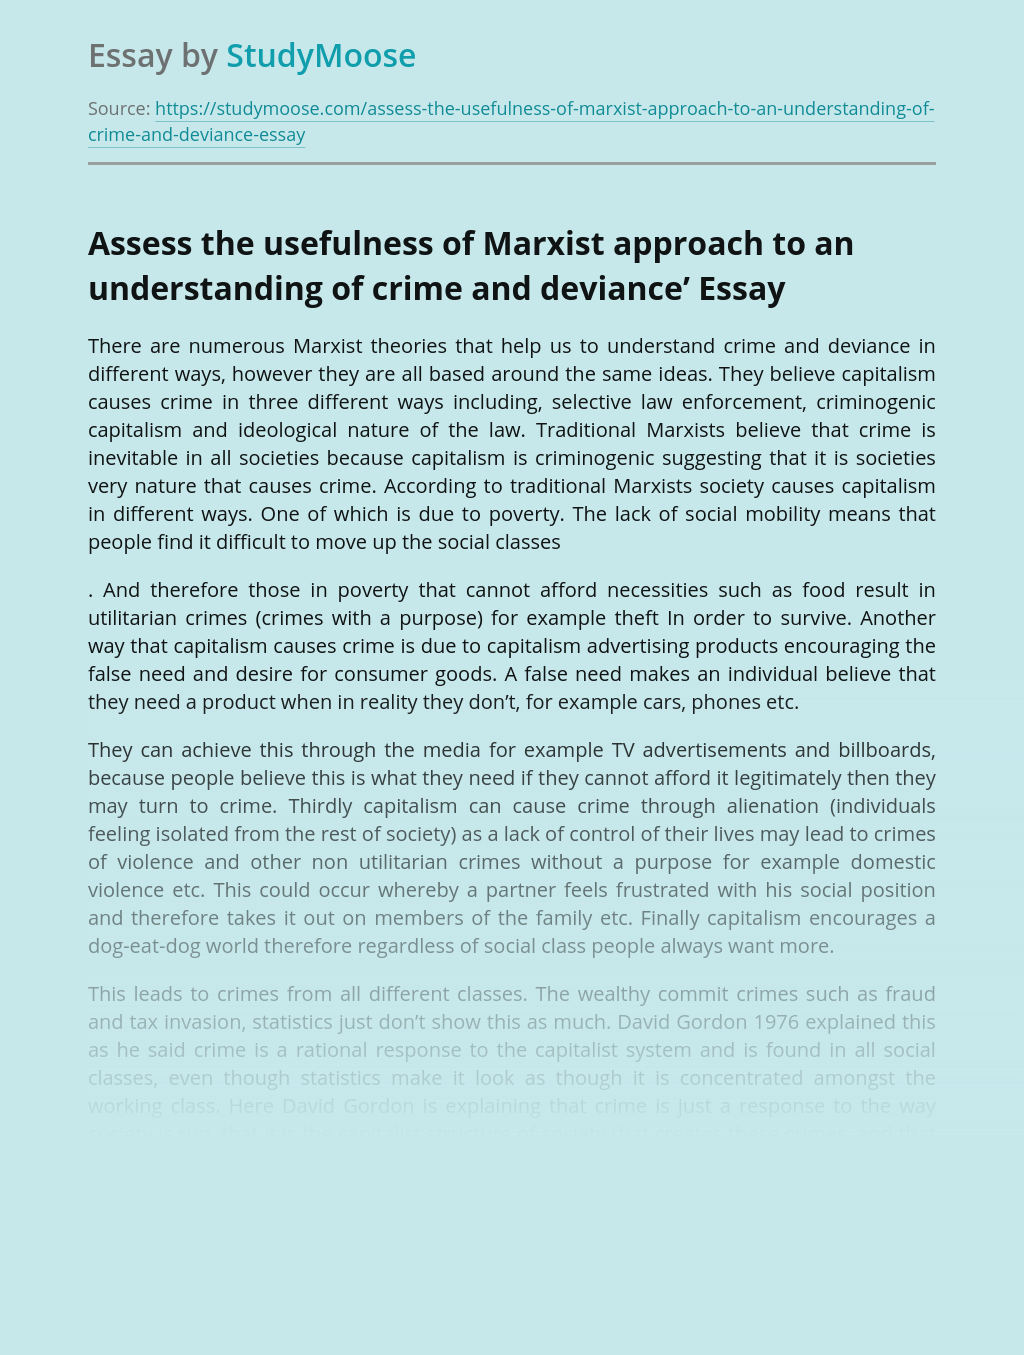 Assess the usefulness of Marxist approach to an understanding of crime and deviance'